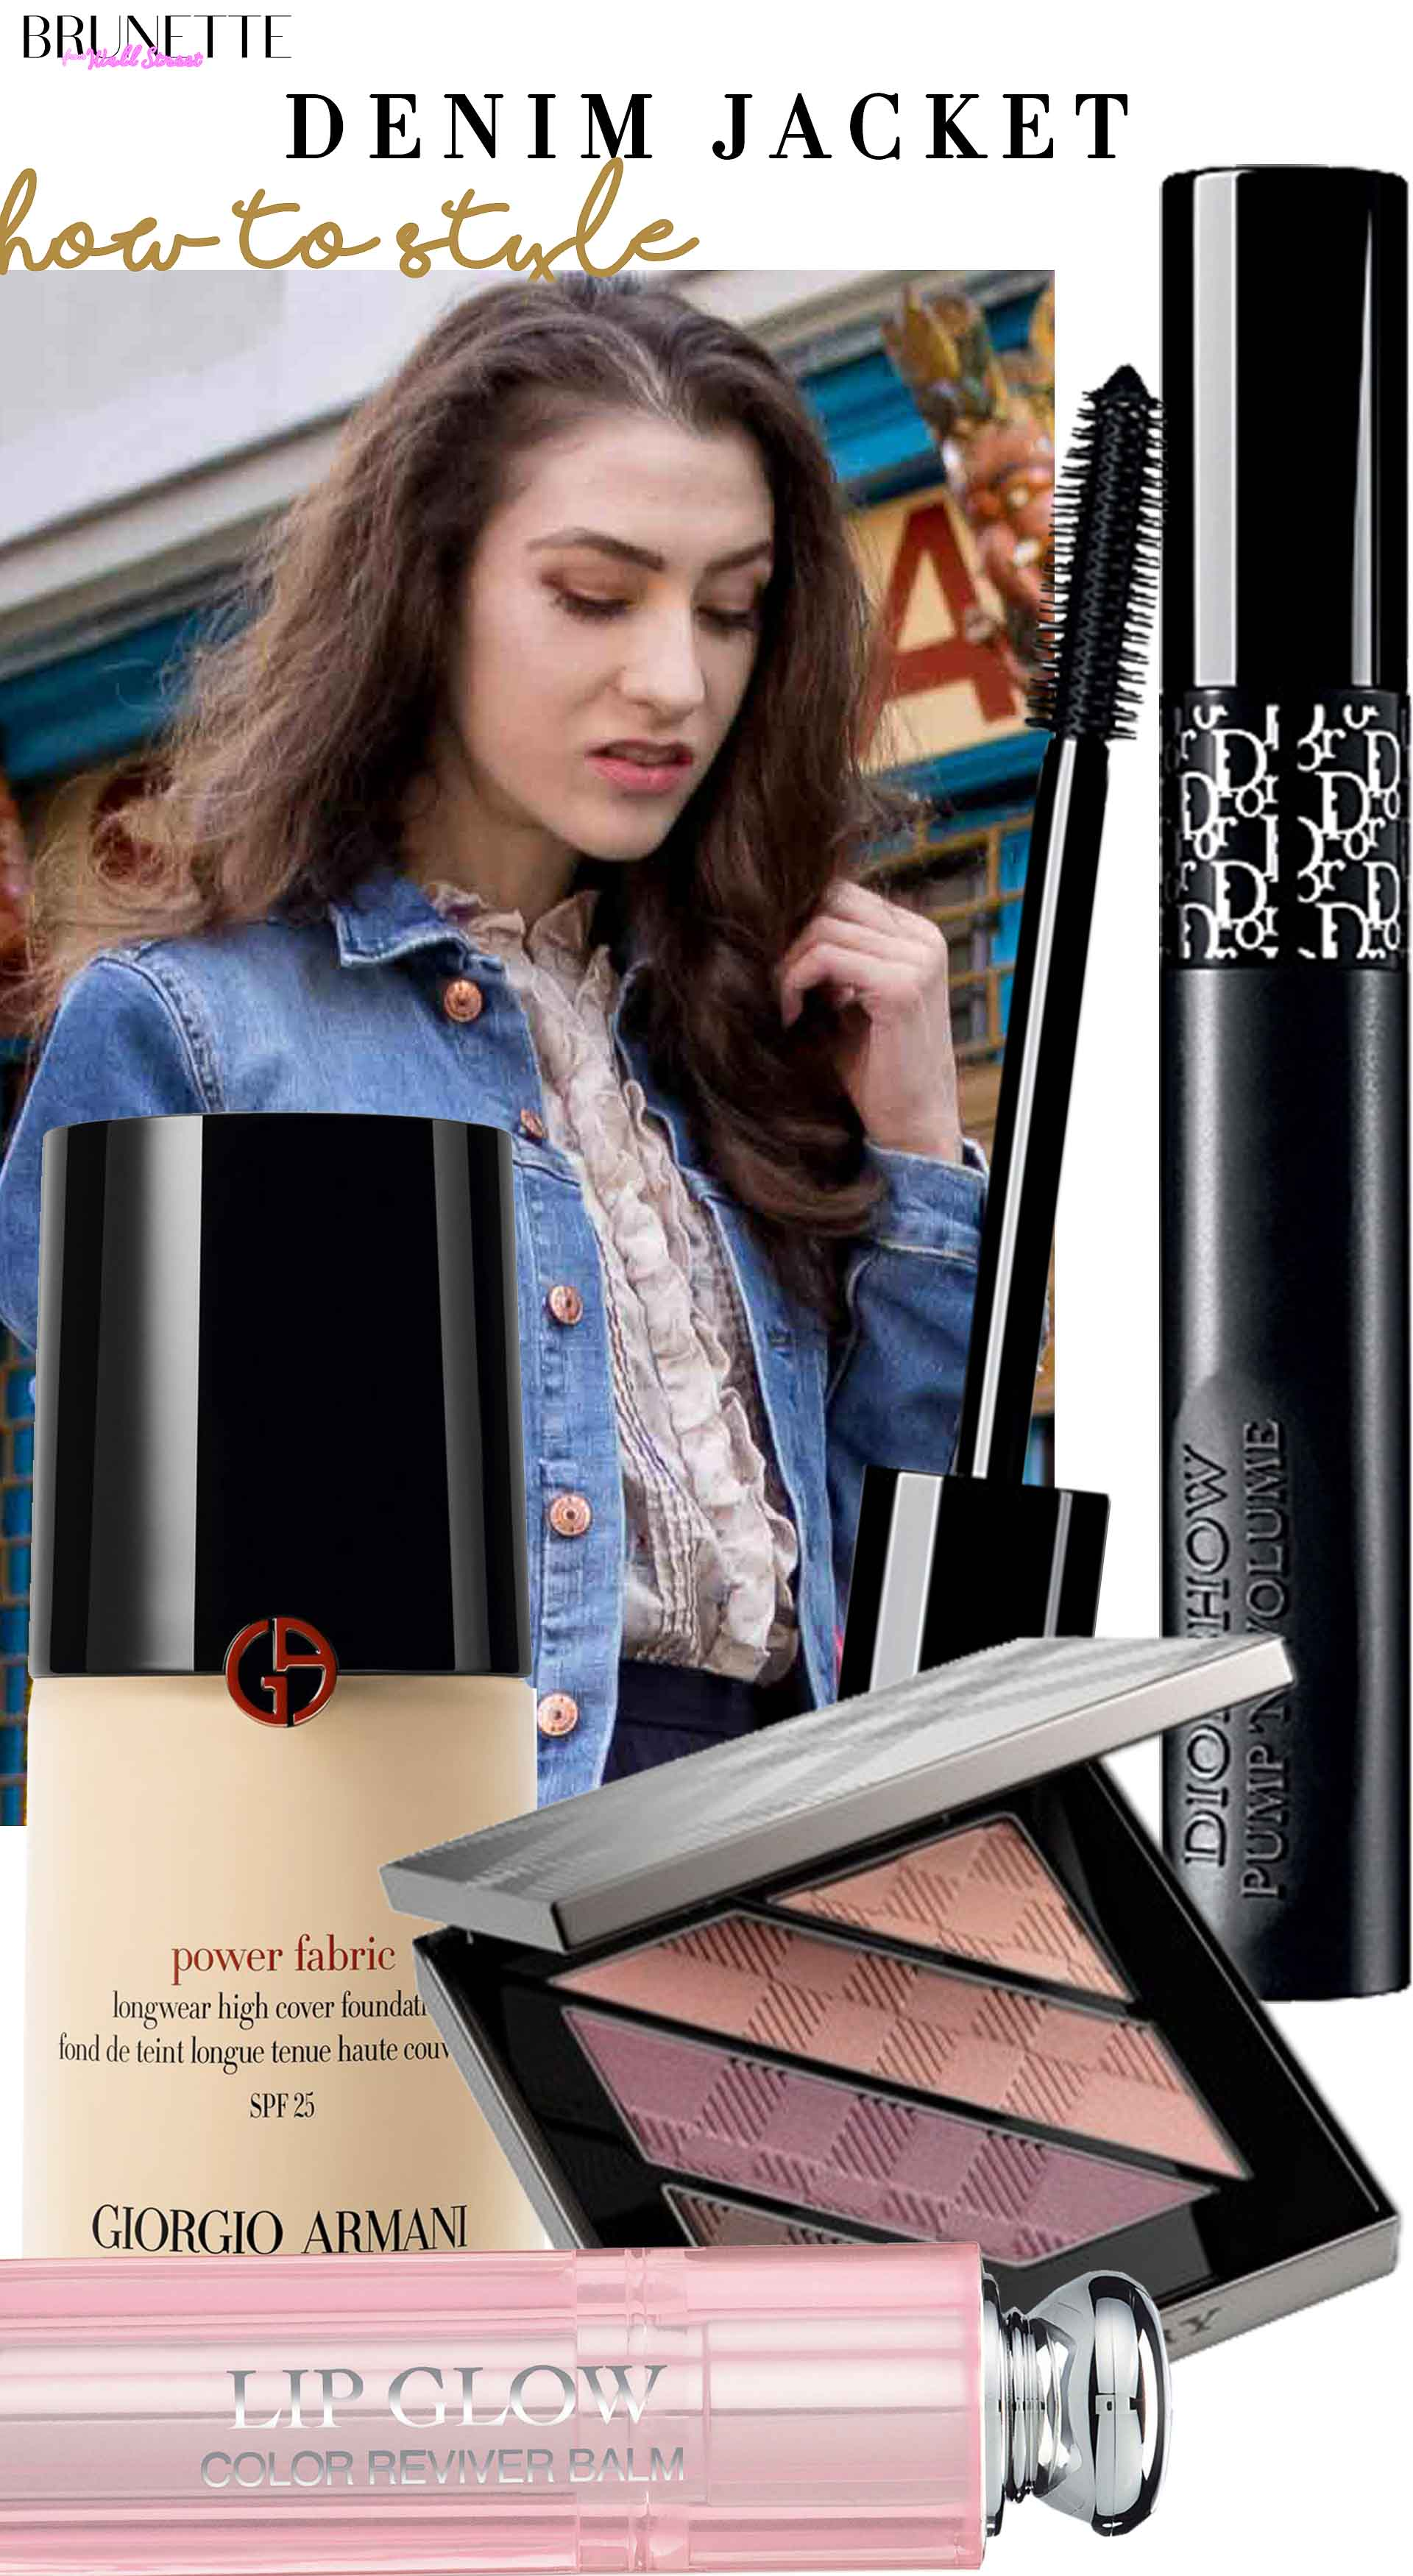 Brunette from Wall Street makeup to wear with denim jacket